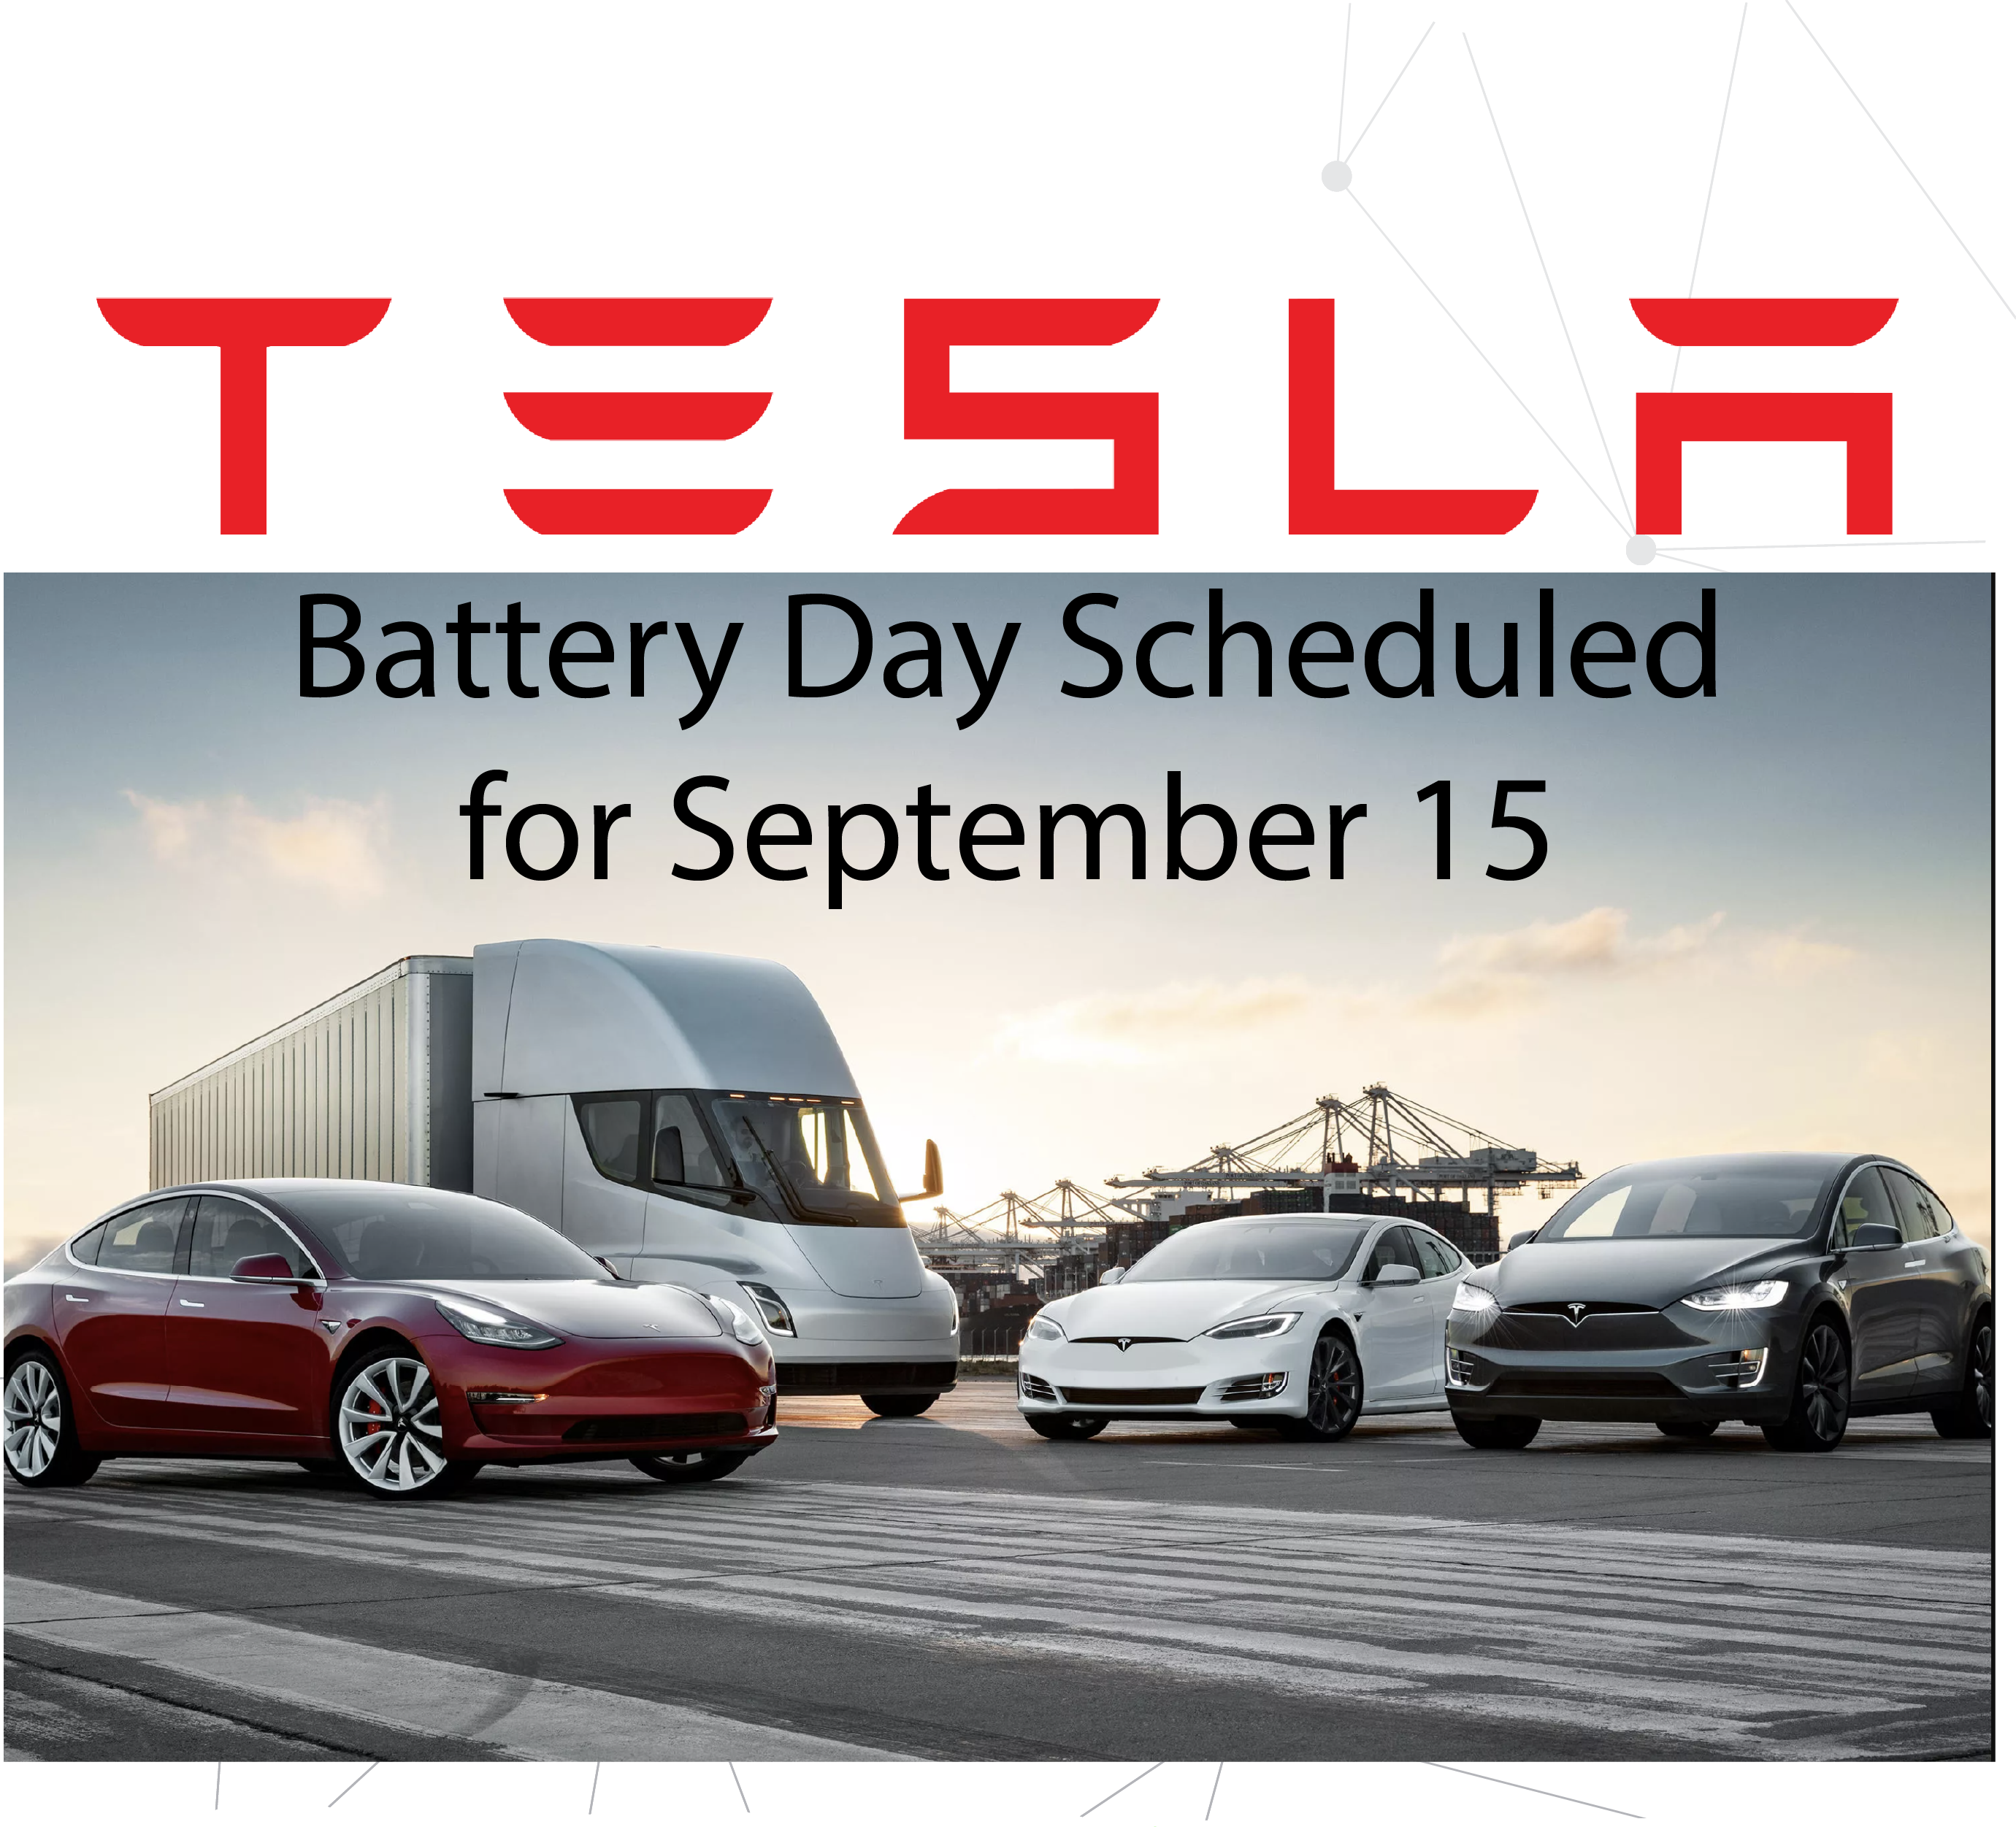 Battery Day Announced